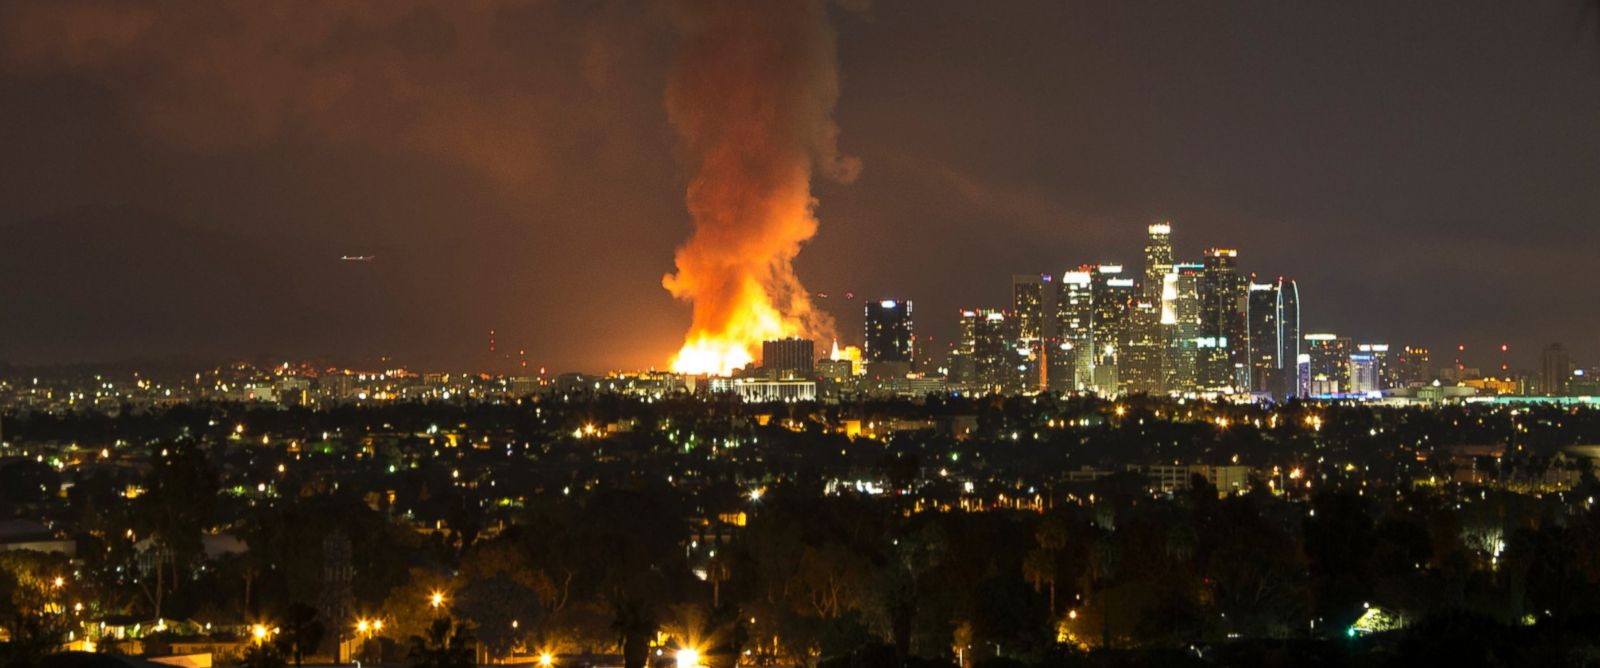 PHOTO: A photo provided by Nancy Yuille shows a massive fire engulfing an apartment building construction site near downtown Los Angeles, Dec. 8, 2014.